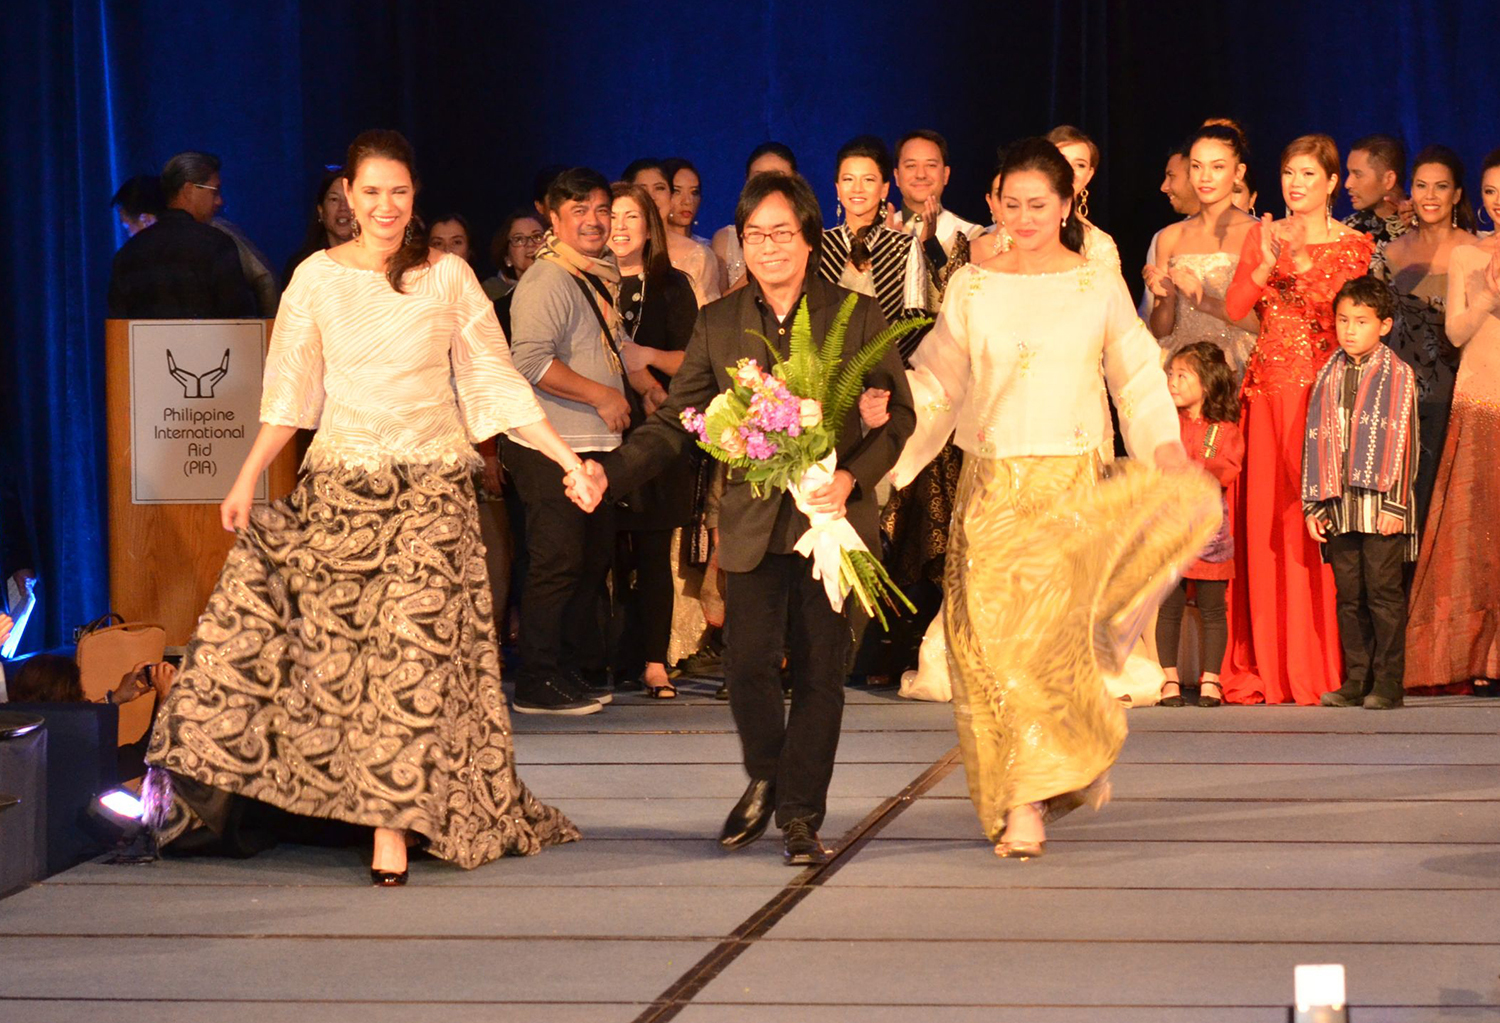 """Barge Ramos is the featured designer at this year's Philippine International Aid's (PIA) fashion show fundraiser """"Holiday Haute Couture XII""""  (Photo by iClickforacause.org)"""